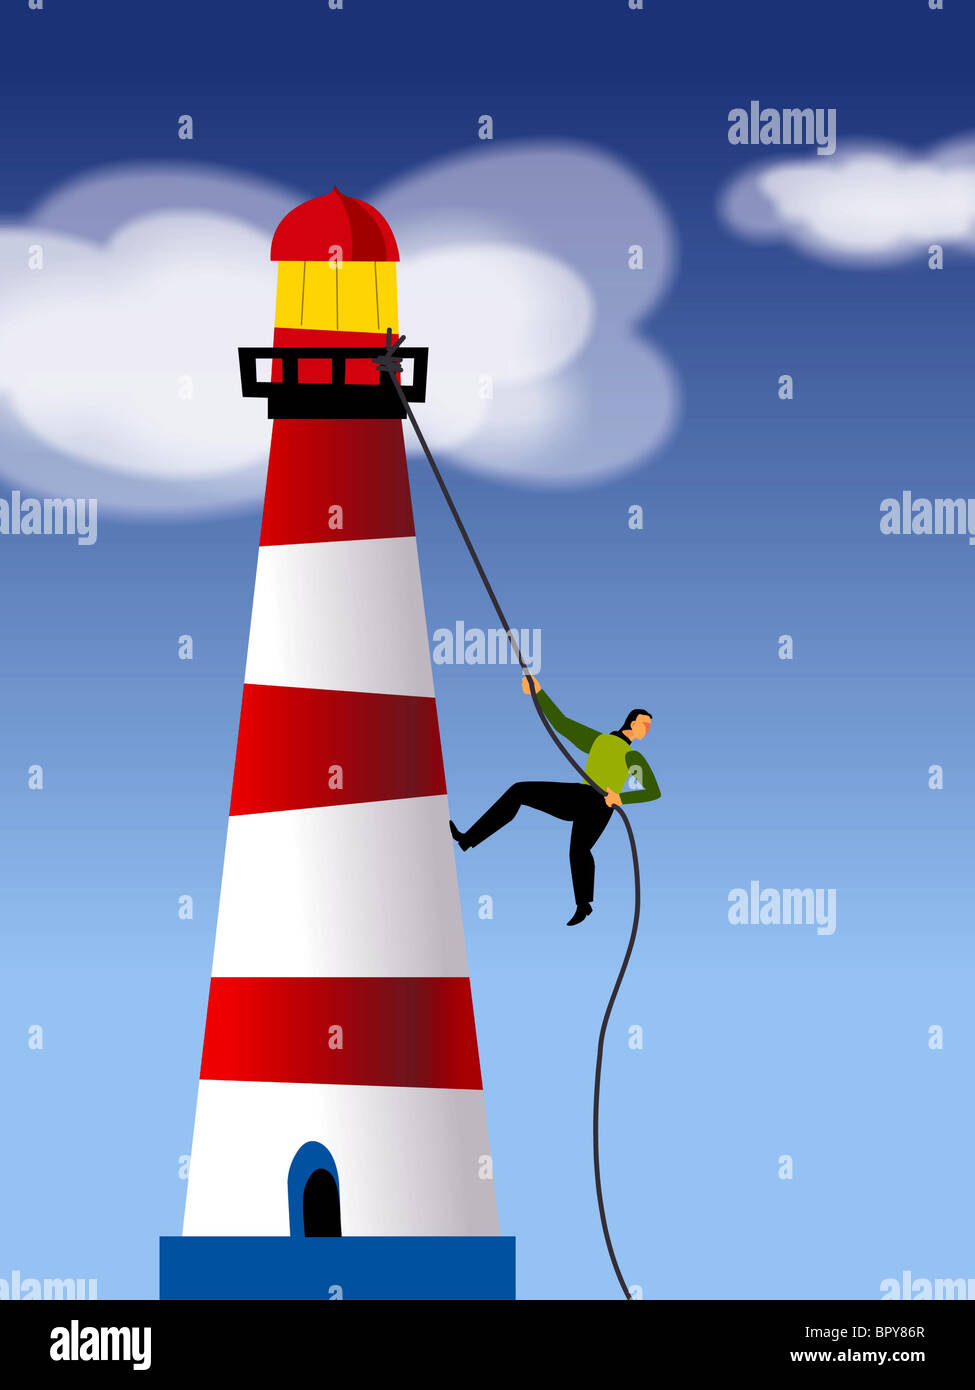 A businessman rope climbing a light house - Stock Image